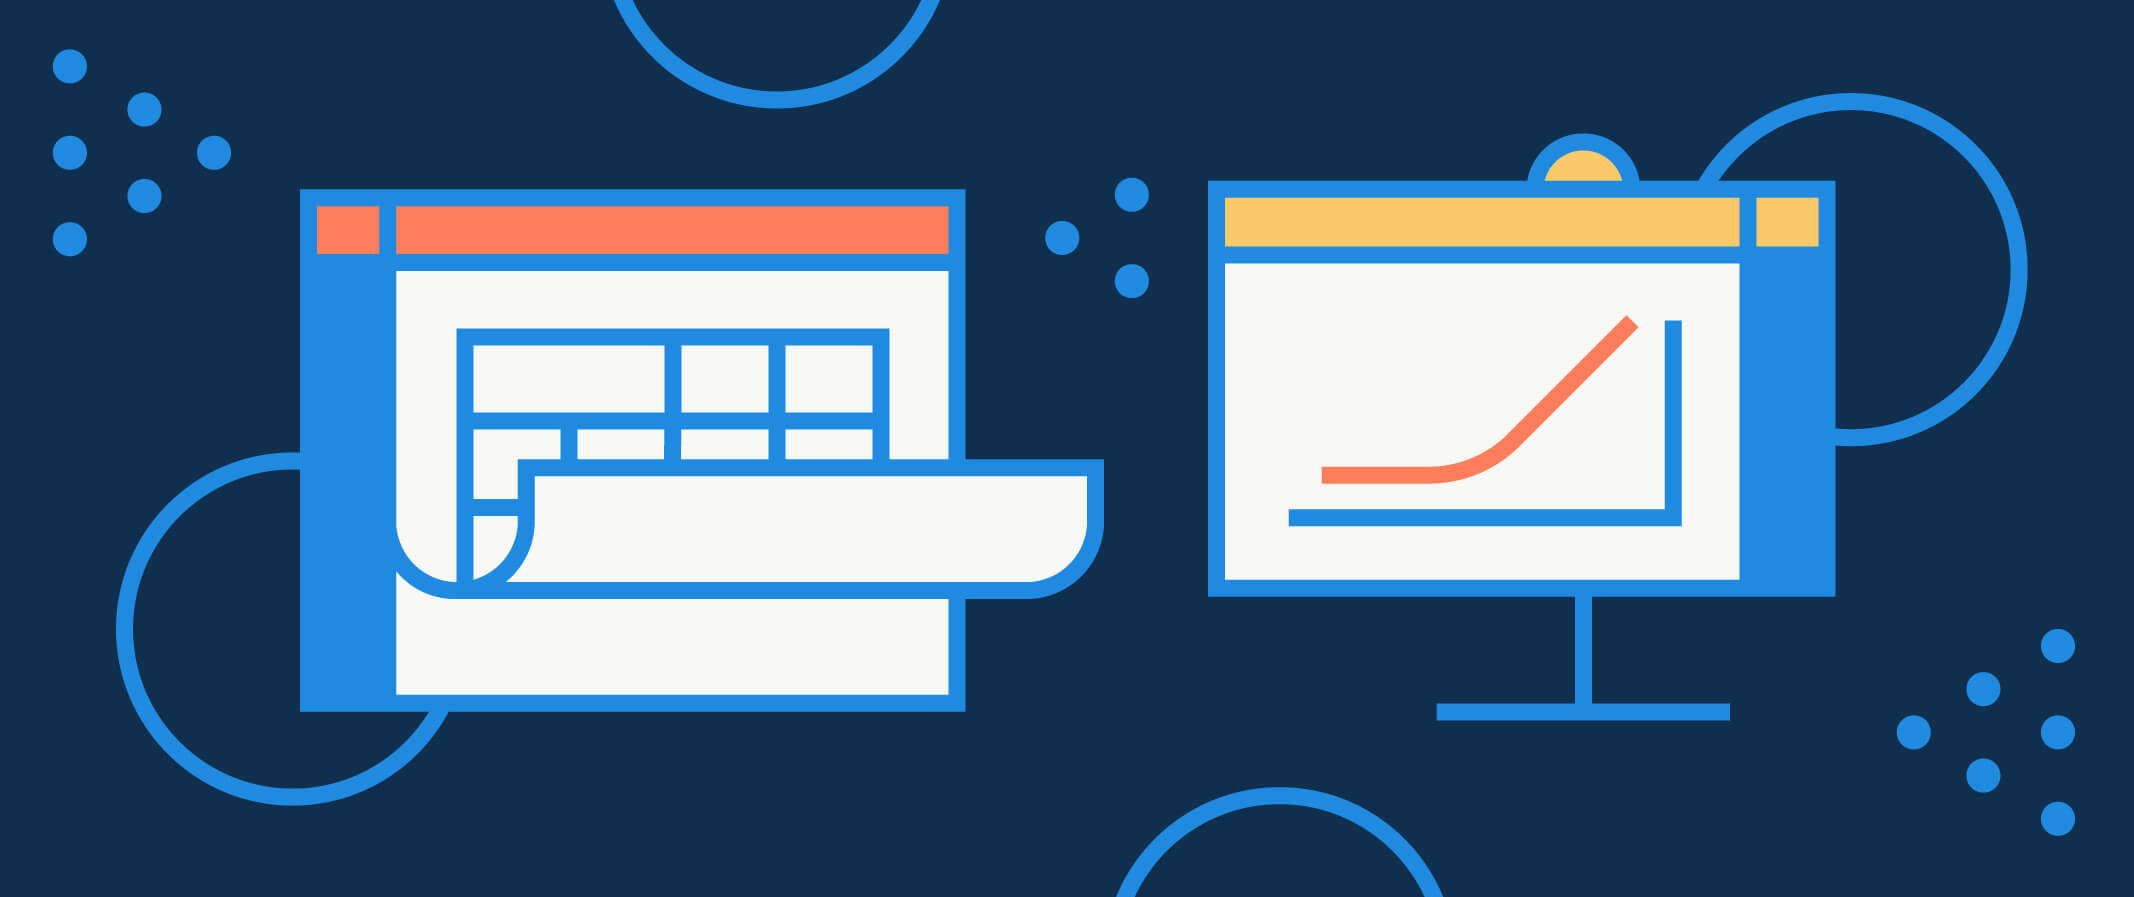 Month-Over-Month Growth Metrics You Should Measure [Calculator]